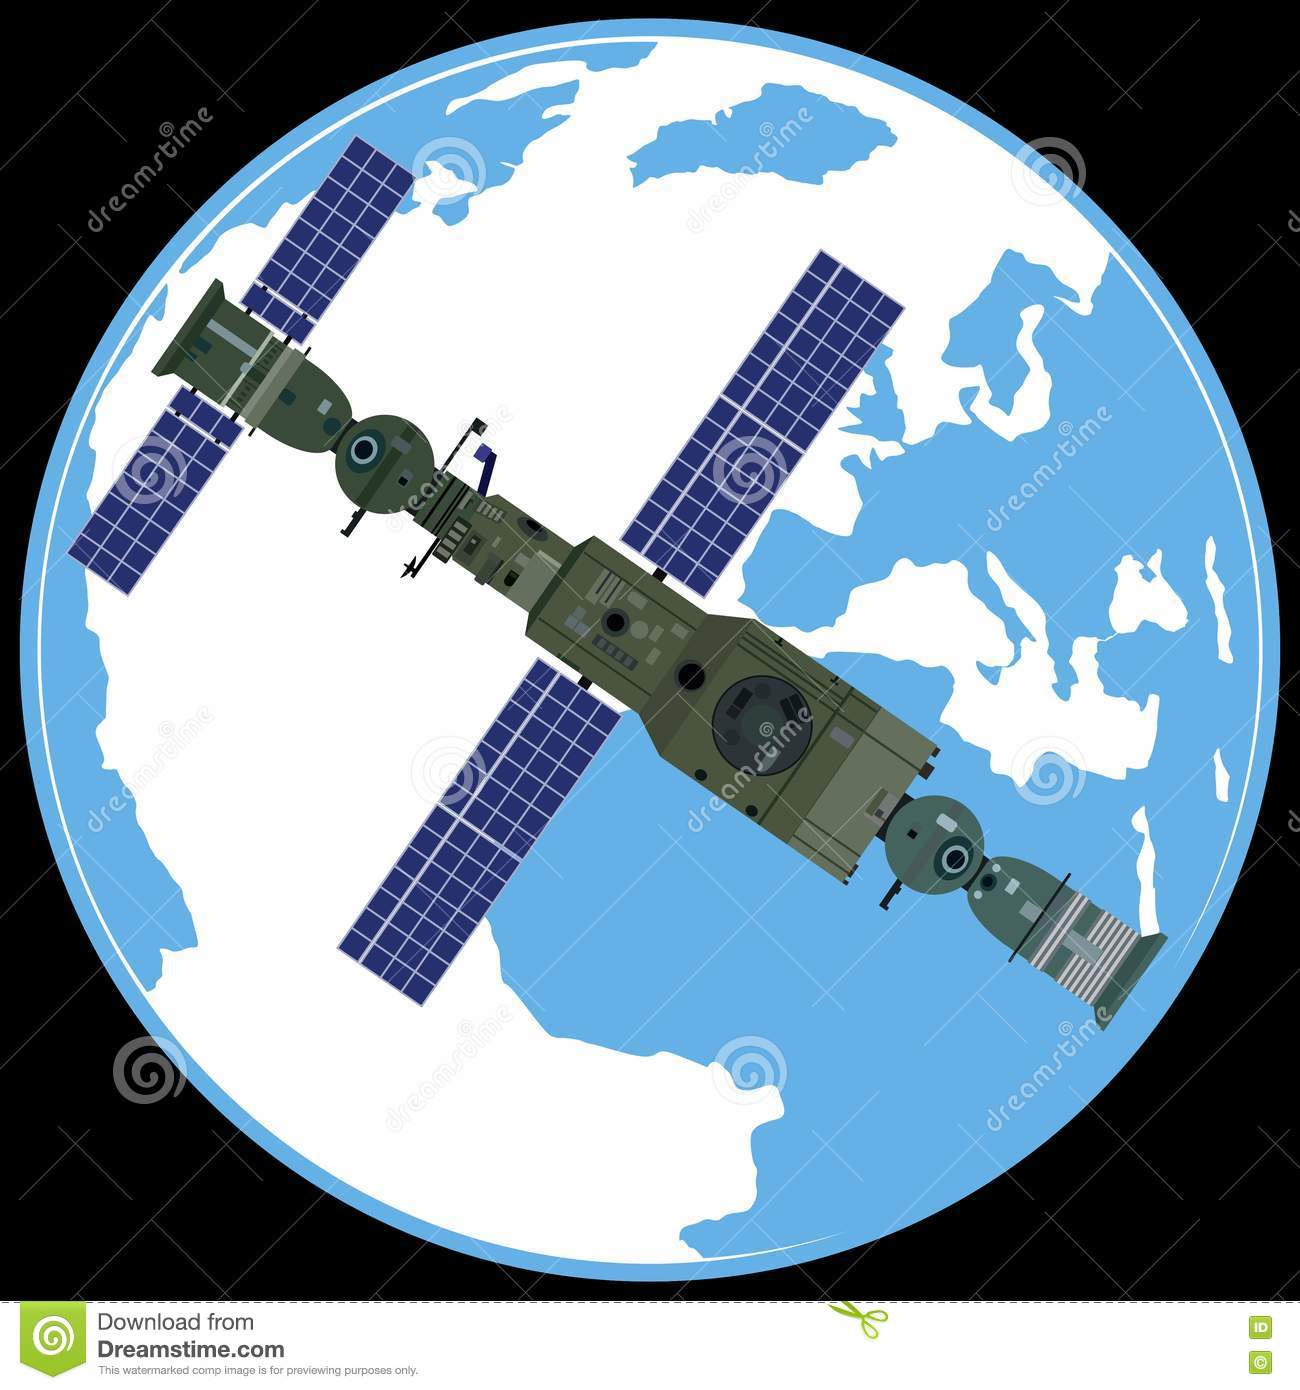 Orbital Station clipart #20, Download drawings